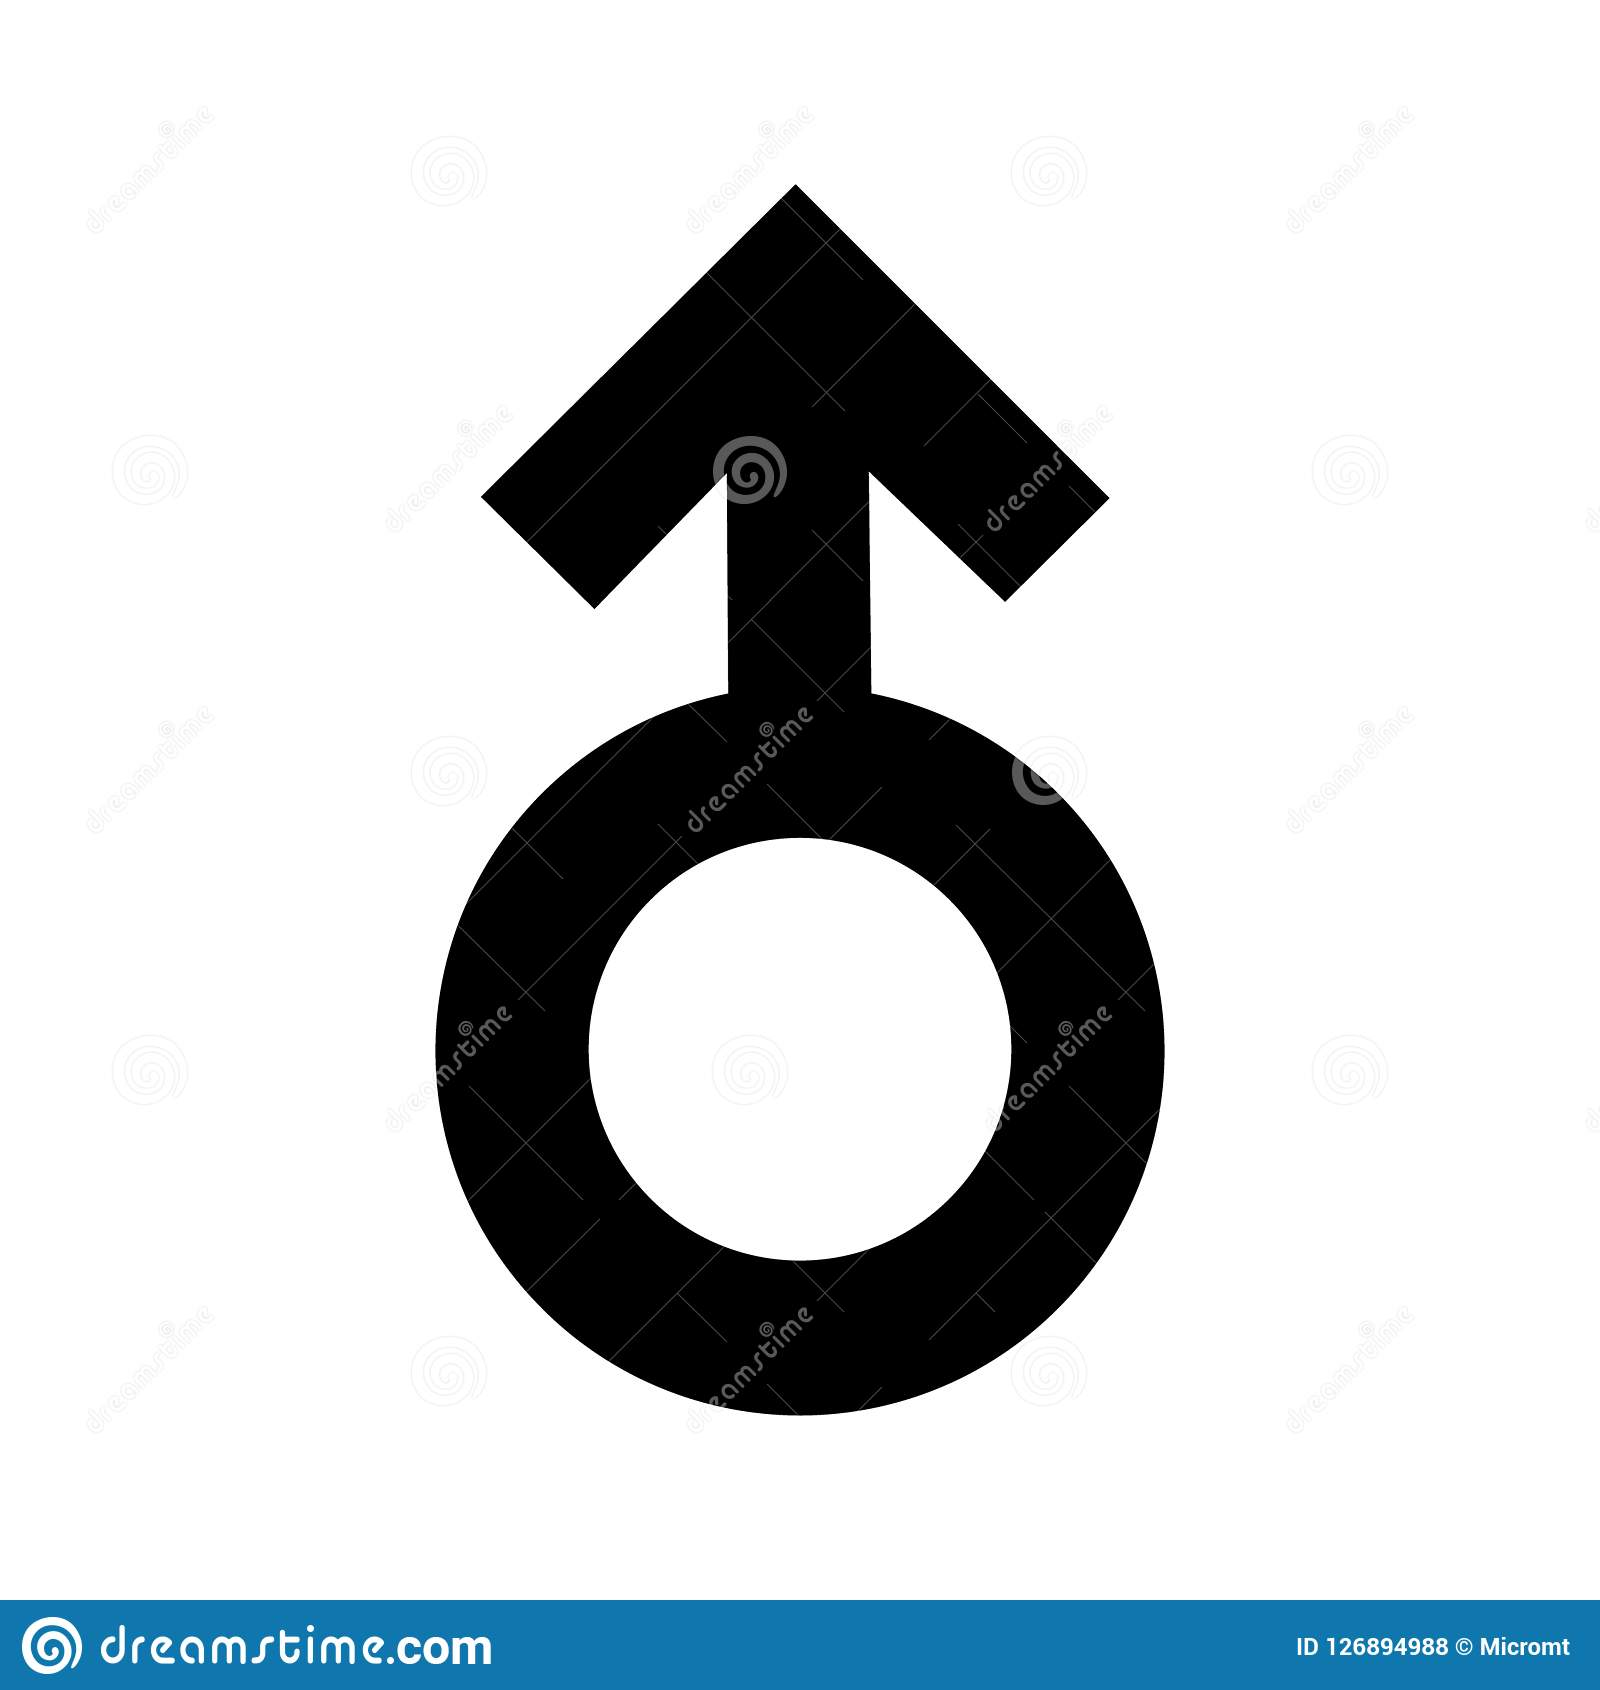 Gender men signs black icon. A symbol sexual affiliation. Flat style for graphic design, logo. A lot of soot. A happy love. Vector